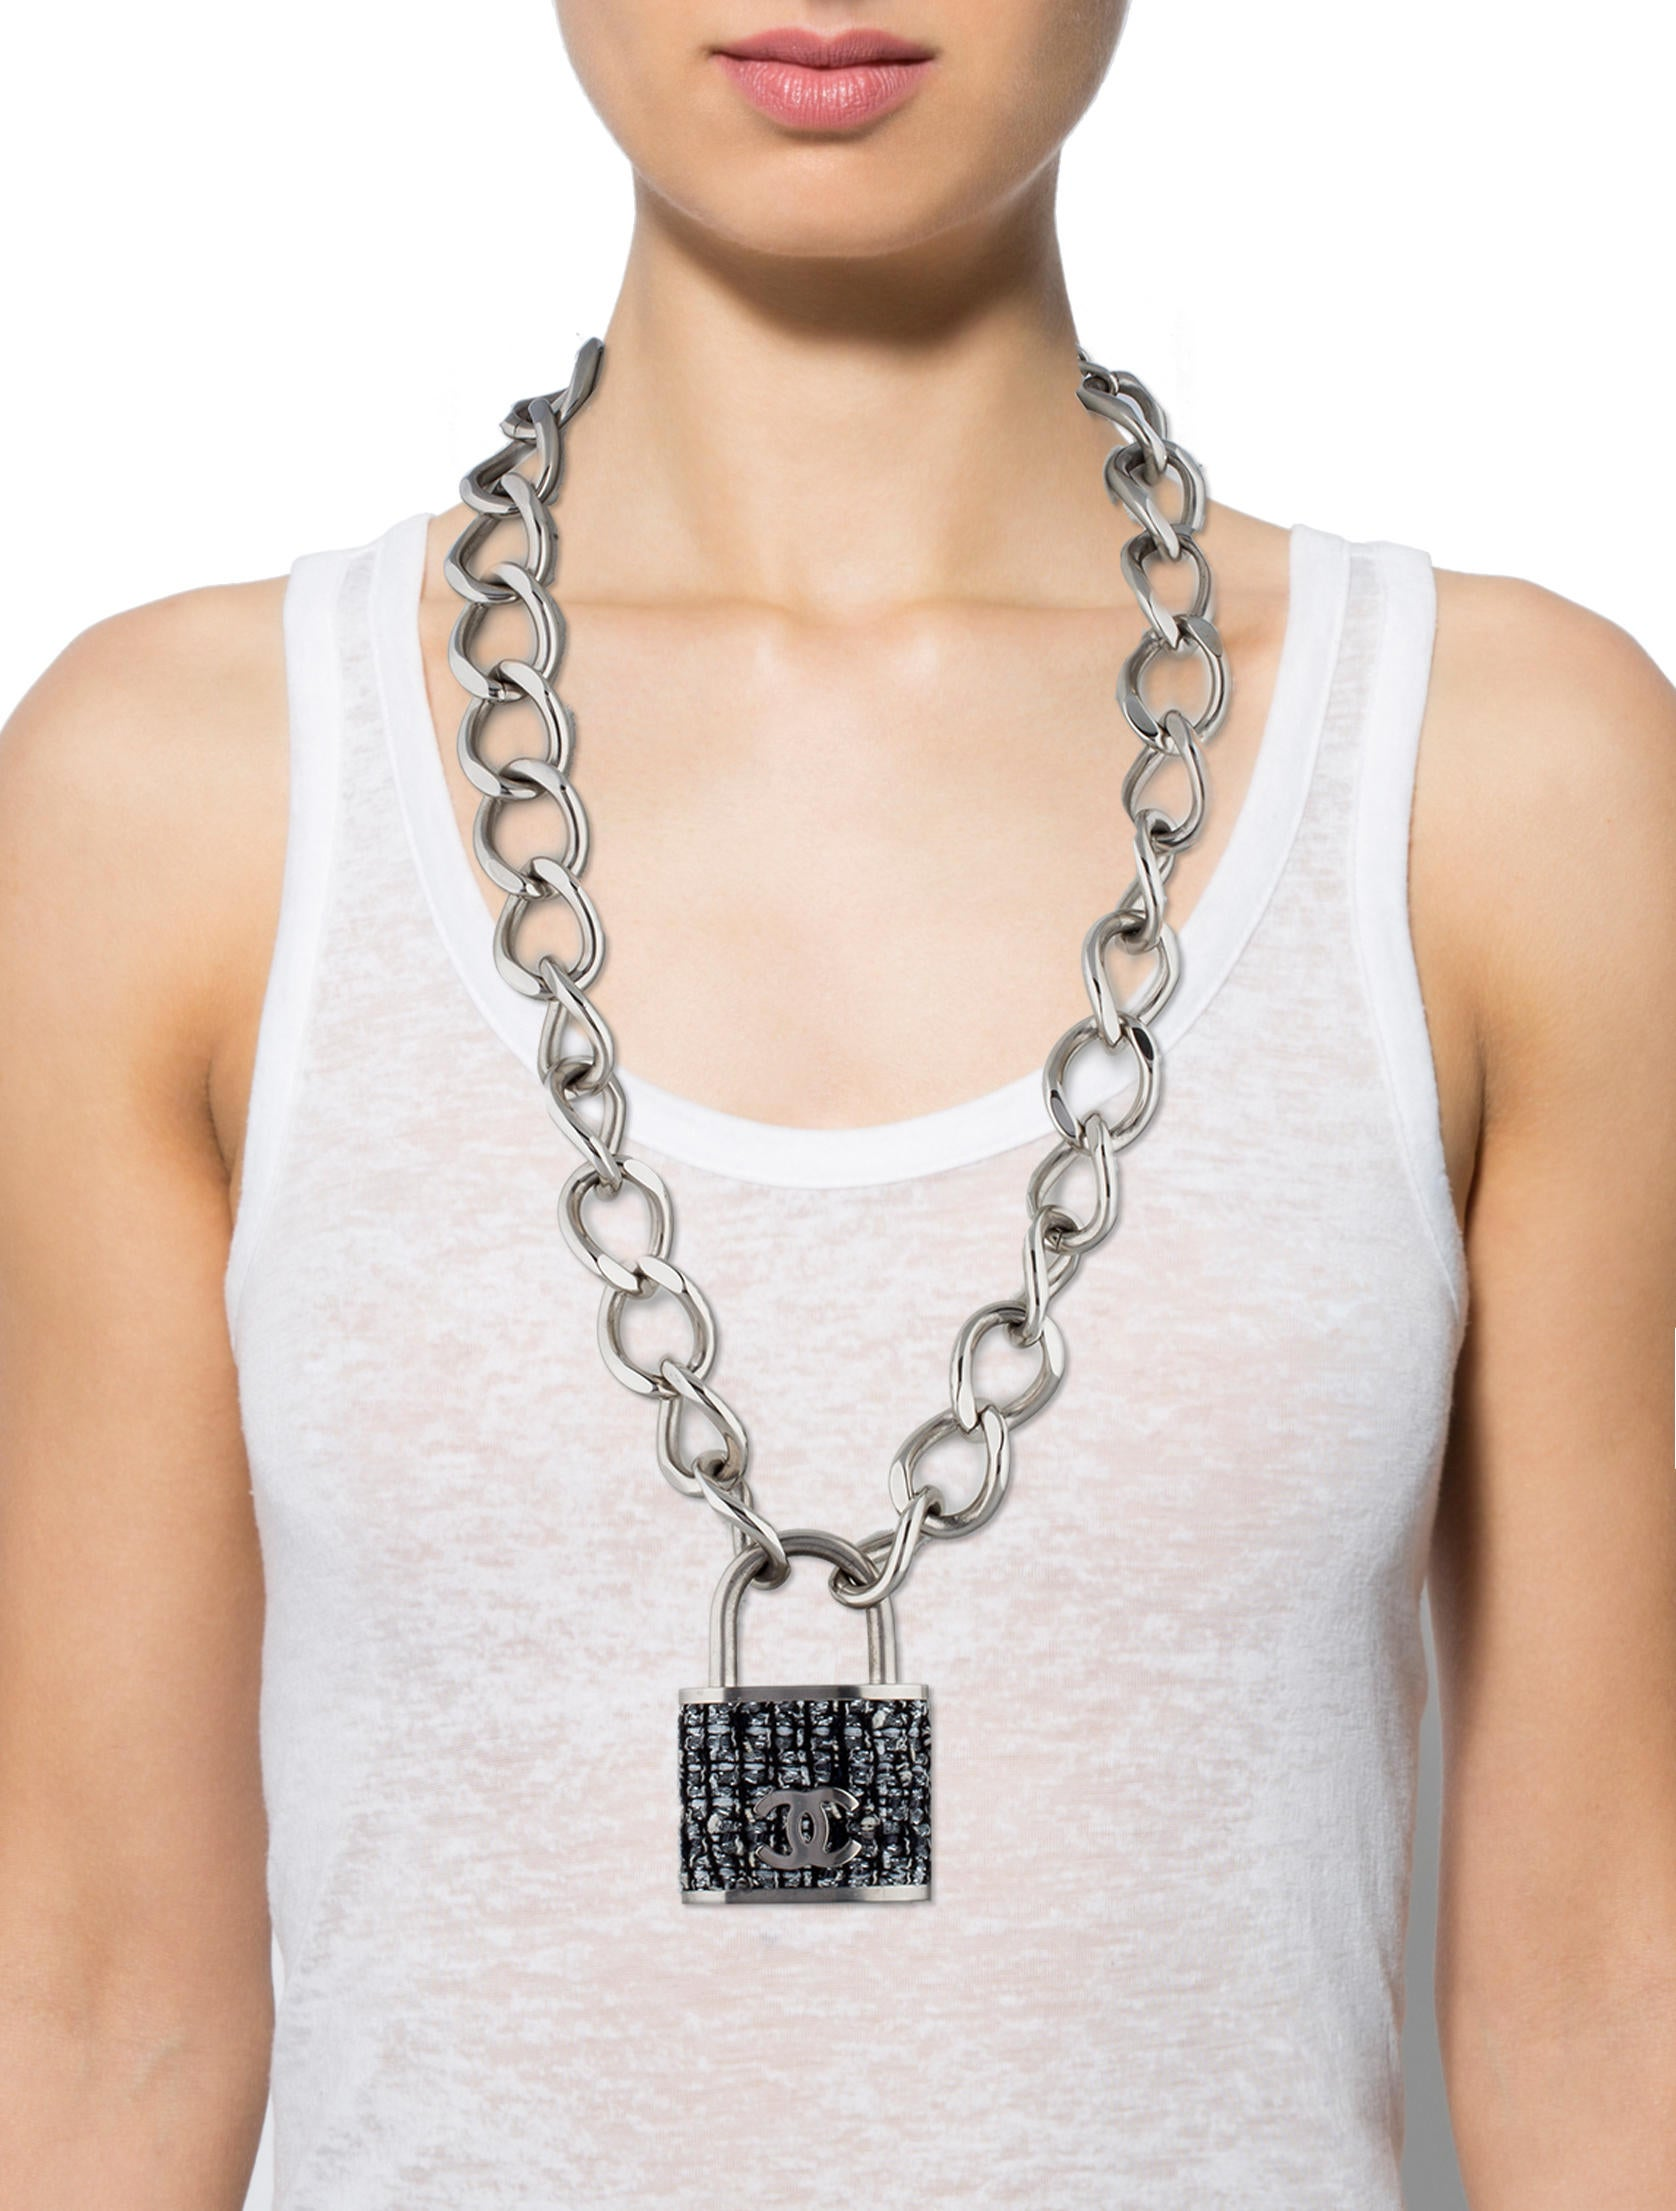 Chanel Tweed Padlock Necklace Necklaces Cha79206 The